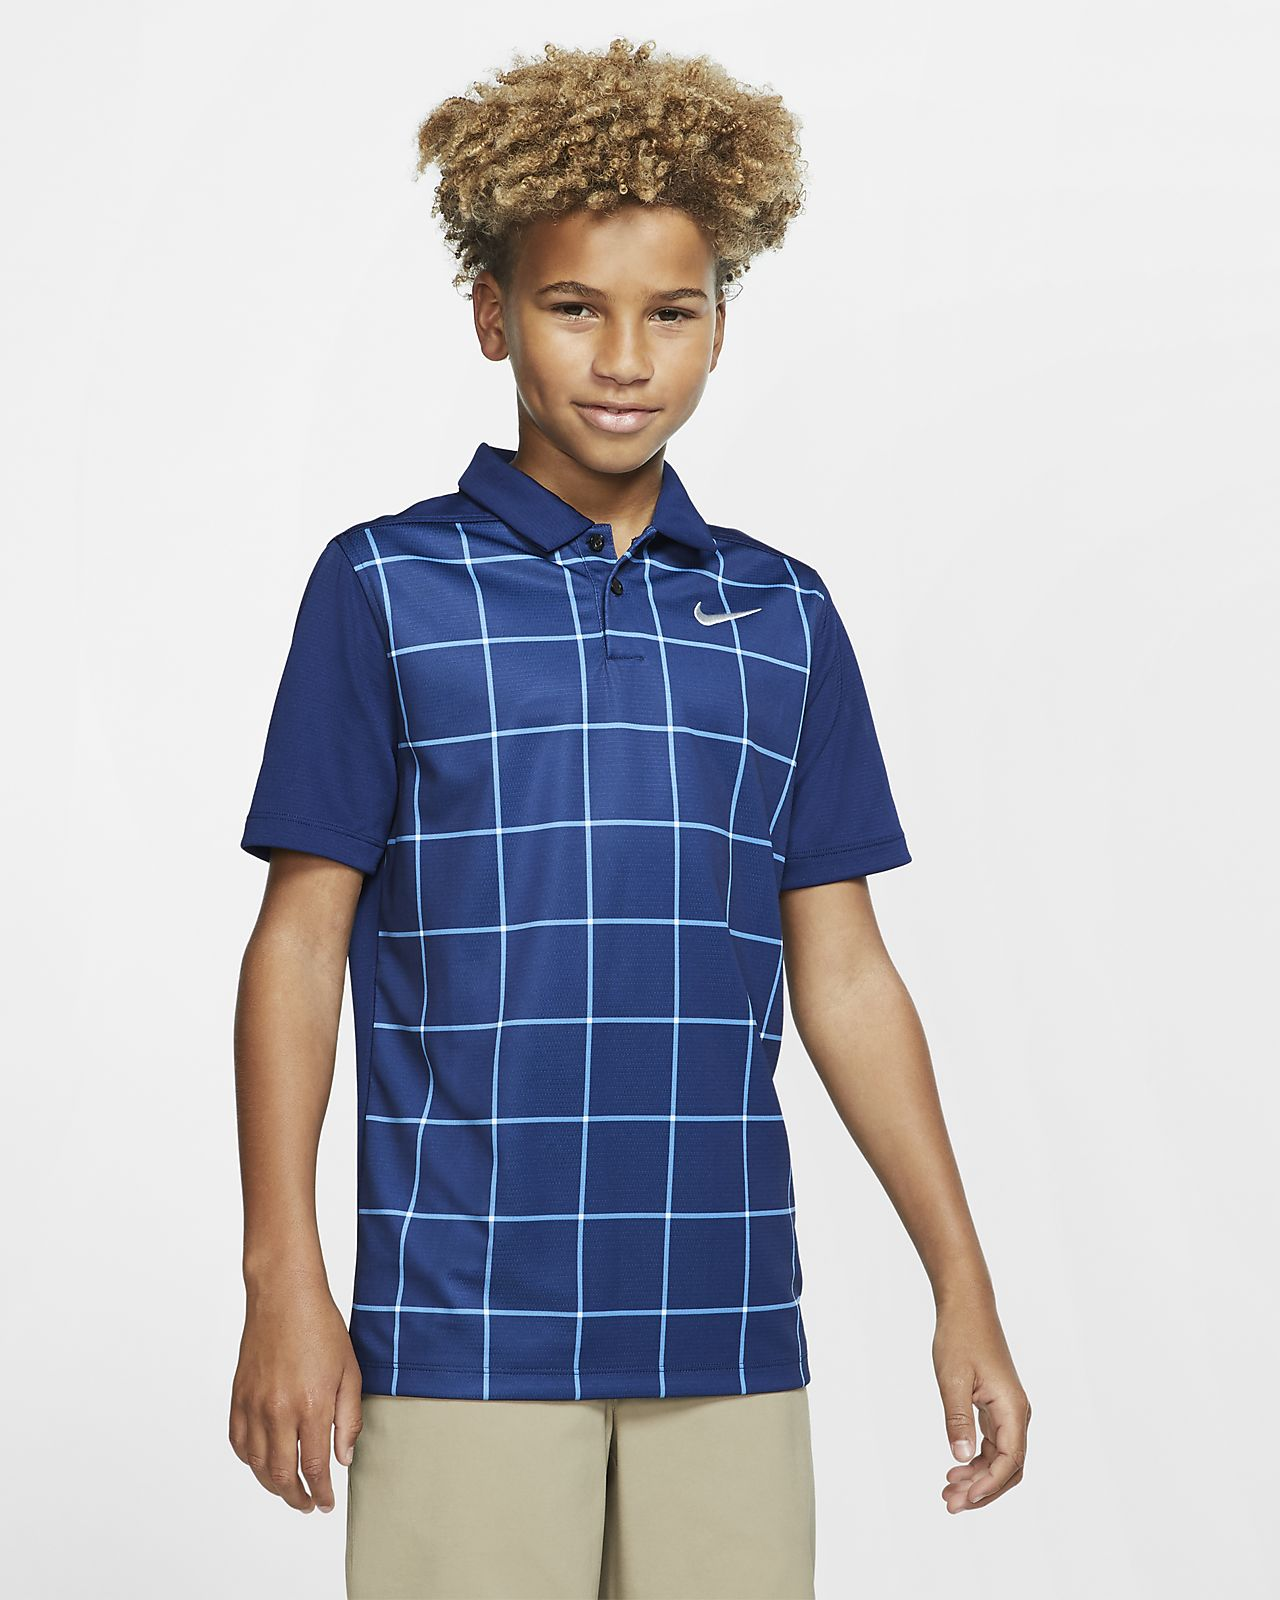 Nike Dri-FIT Older Kids' (Boys') Printed Golf Polo